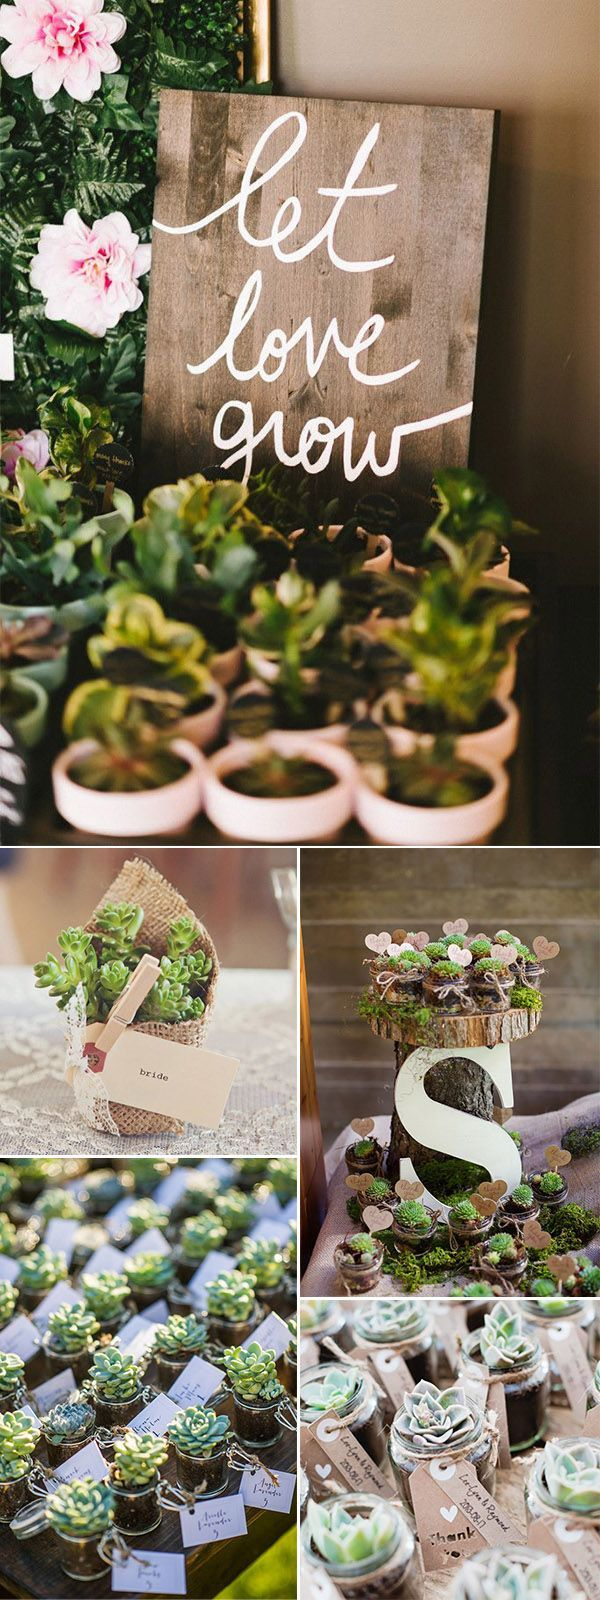 best ideas to incorporate succulents into your weddings dream